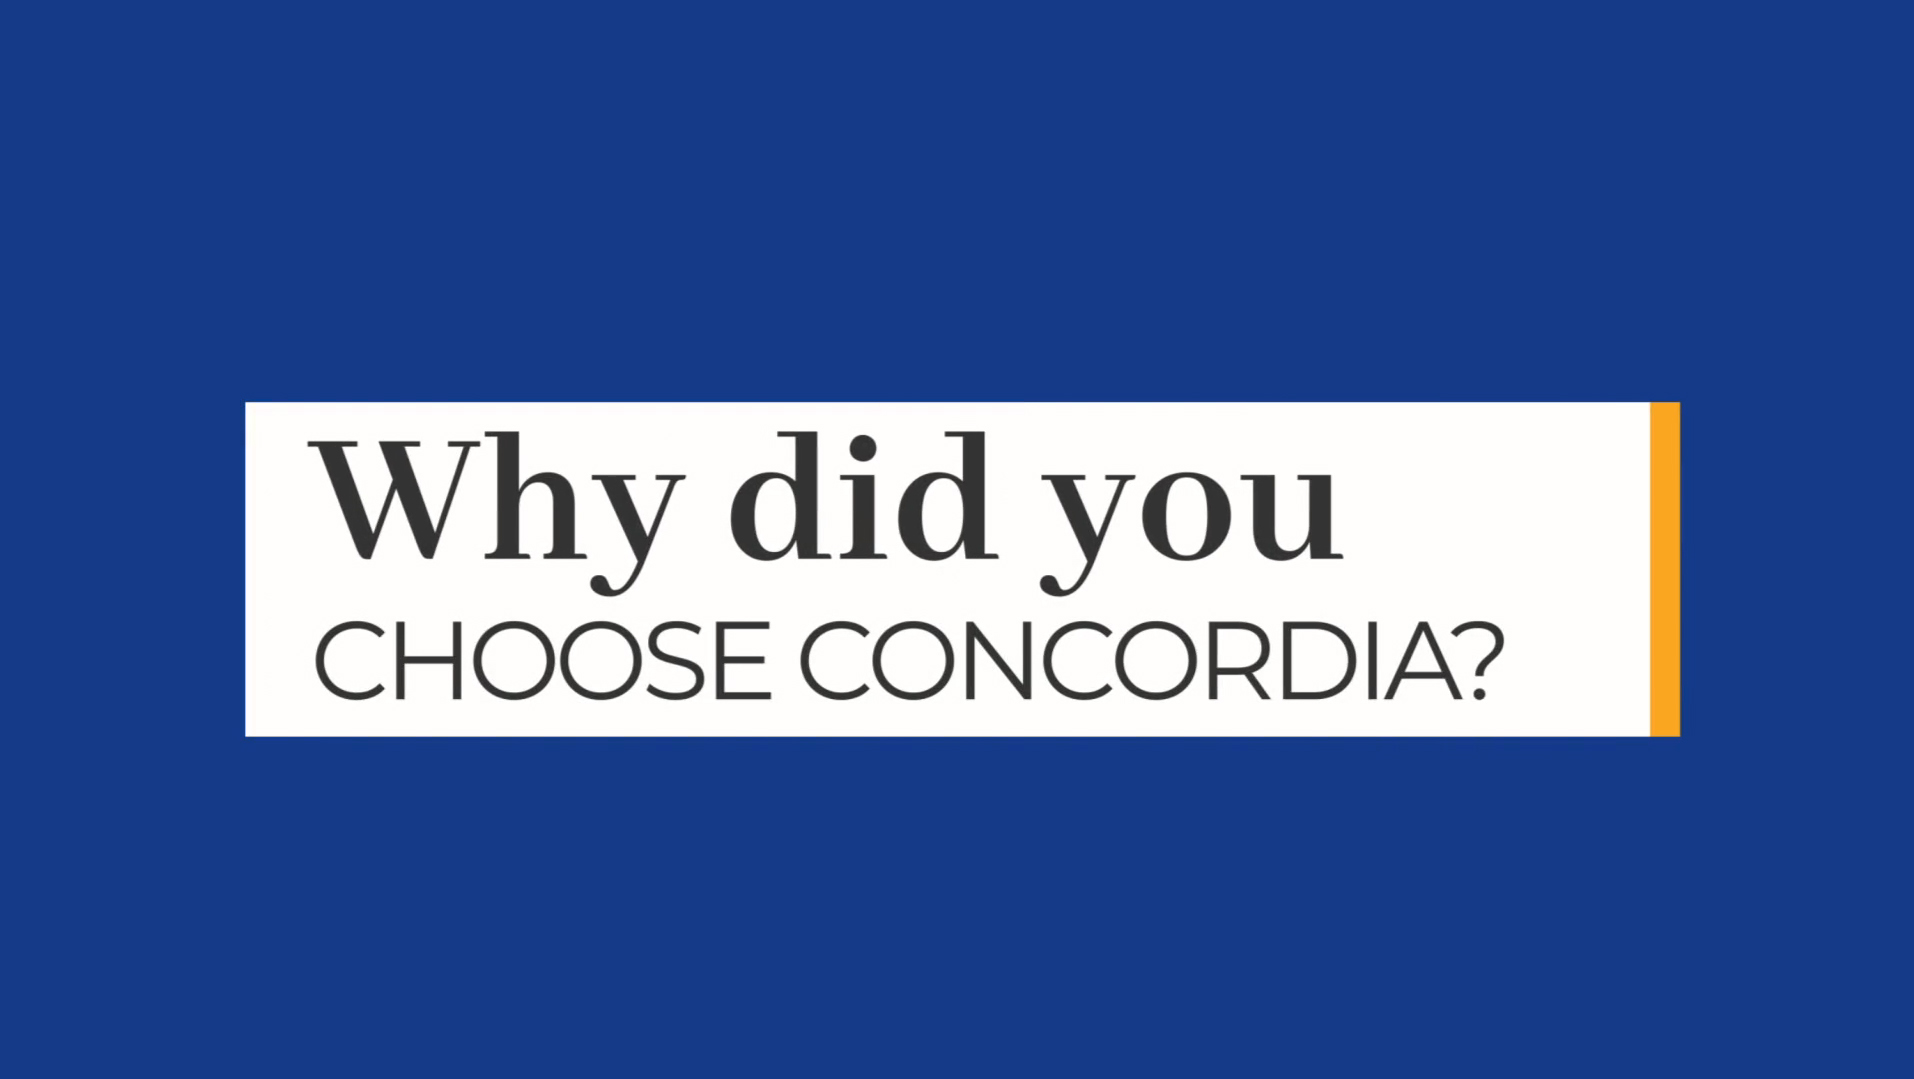 Why Choose Concordia video cover 2021